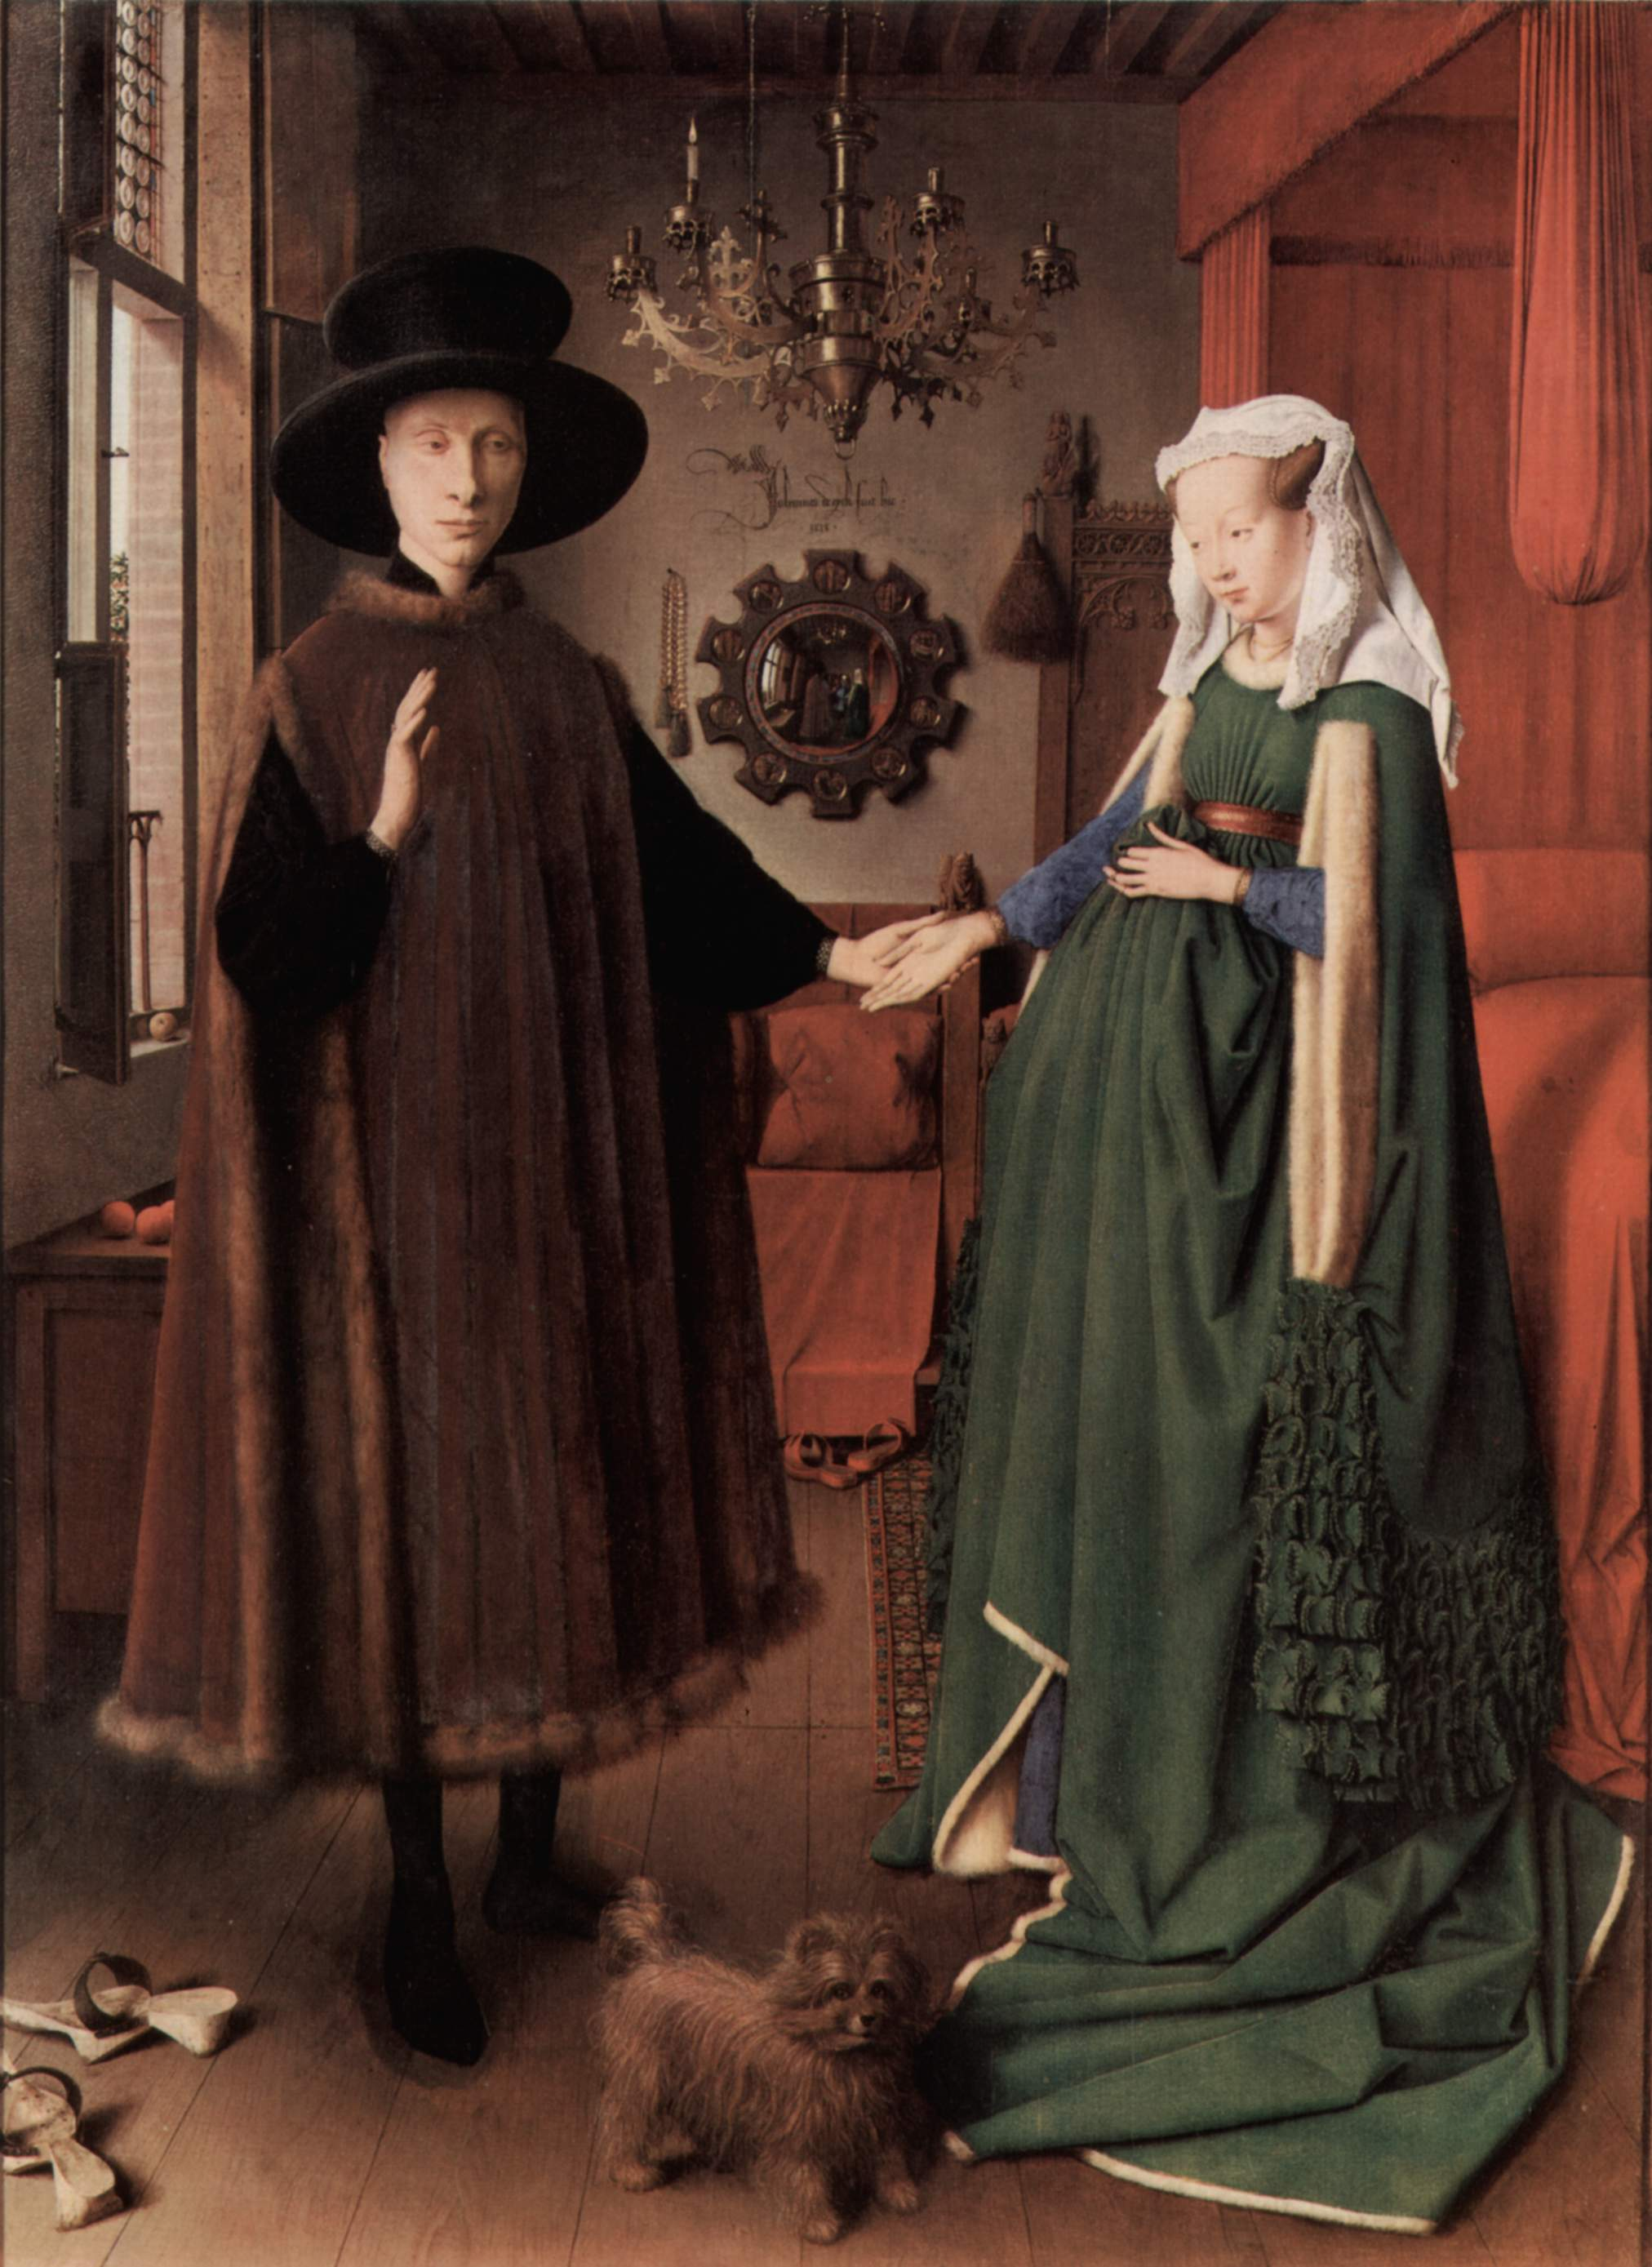 The Arnolfini Portrait, Van Eyck, 1434